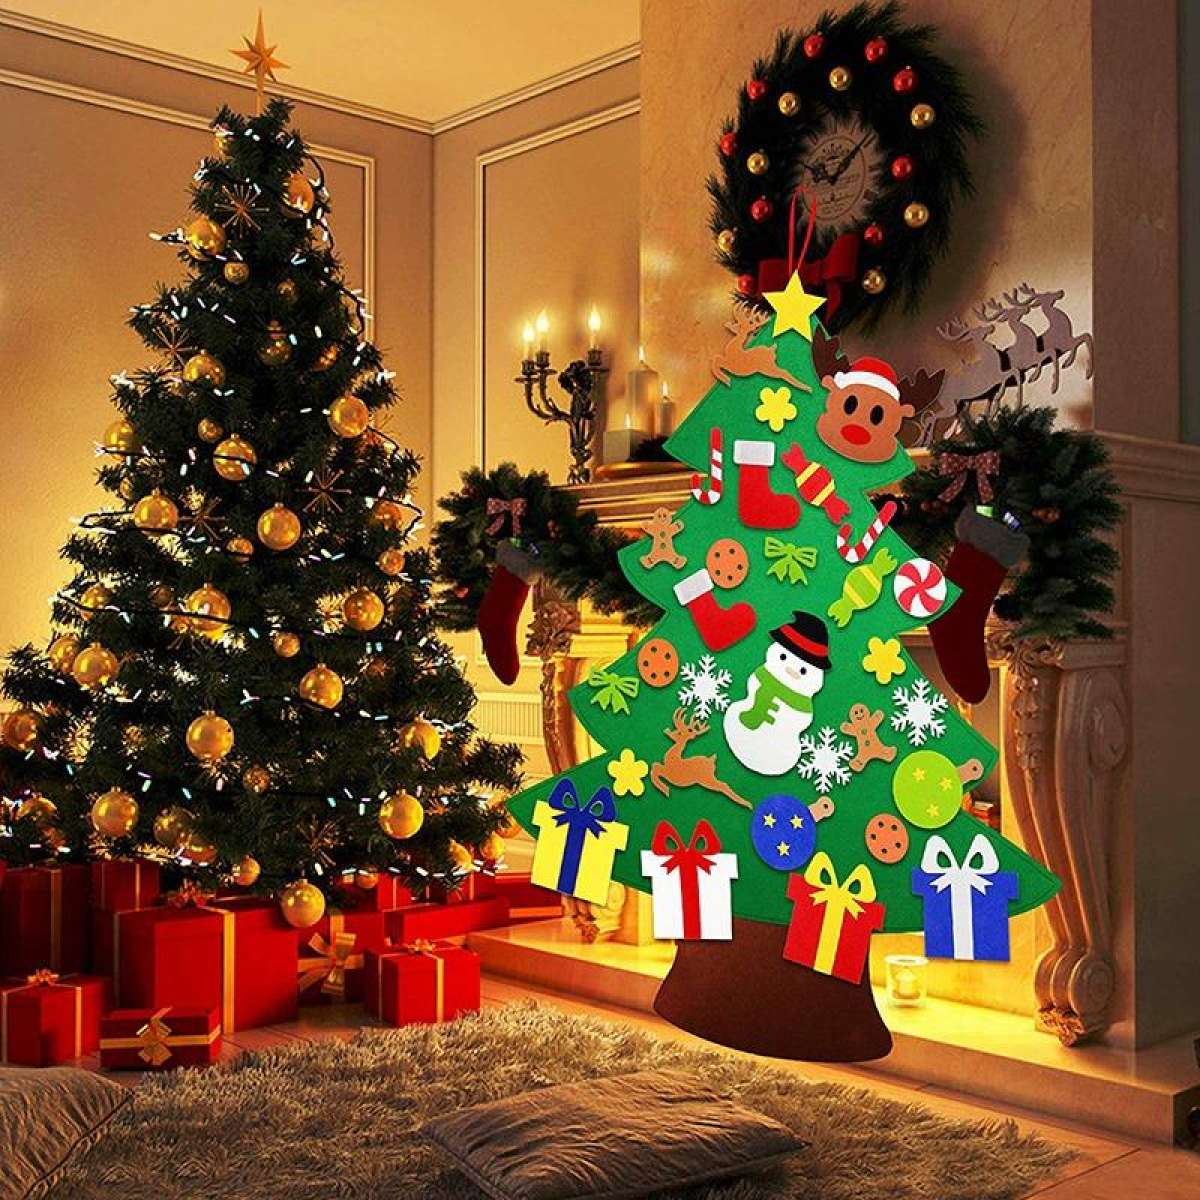 Diy Felt Christmas Tree With 31pcs Ornaments 3 2ft Family 3d Fake Xmas Tree For Kids Toddlers Home Door Window Wall Christmas Decor Lazada